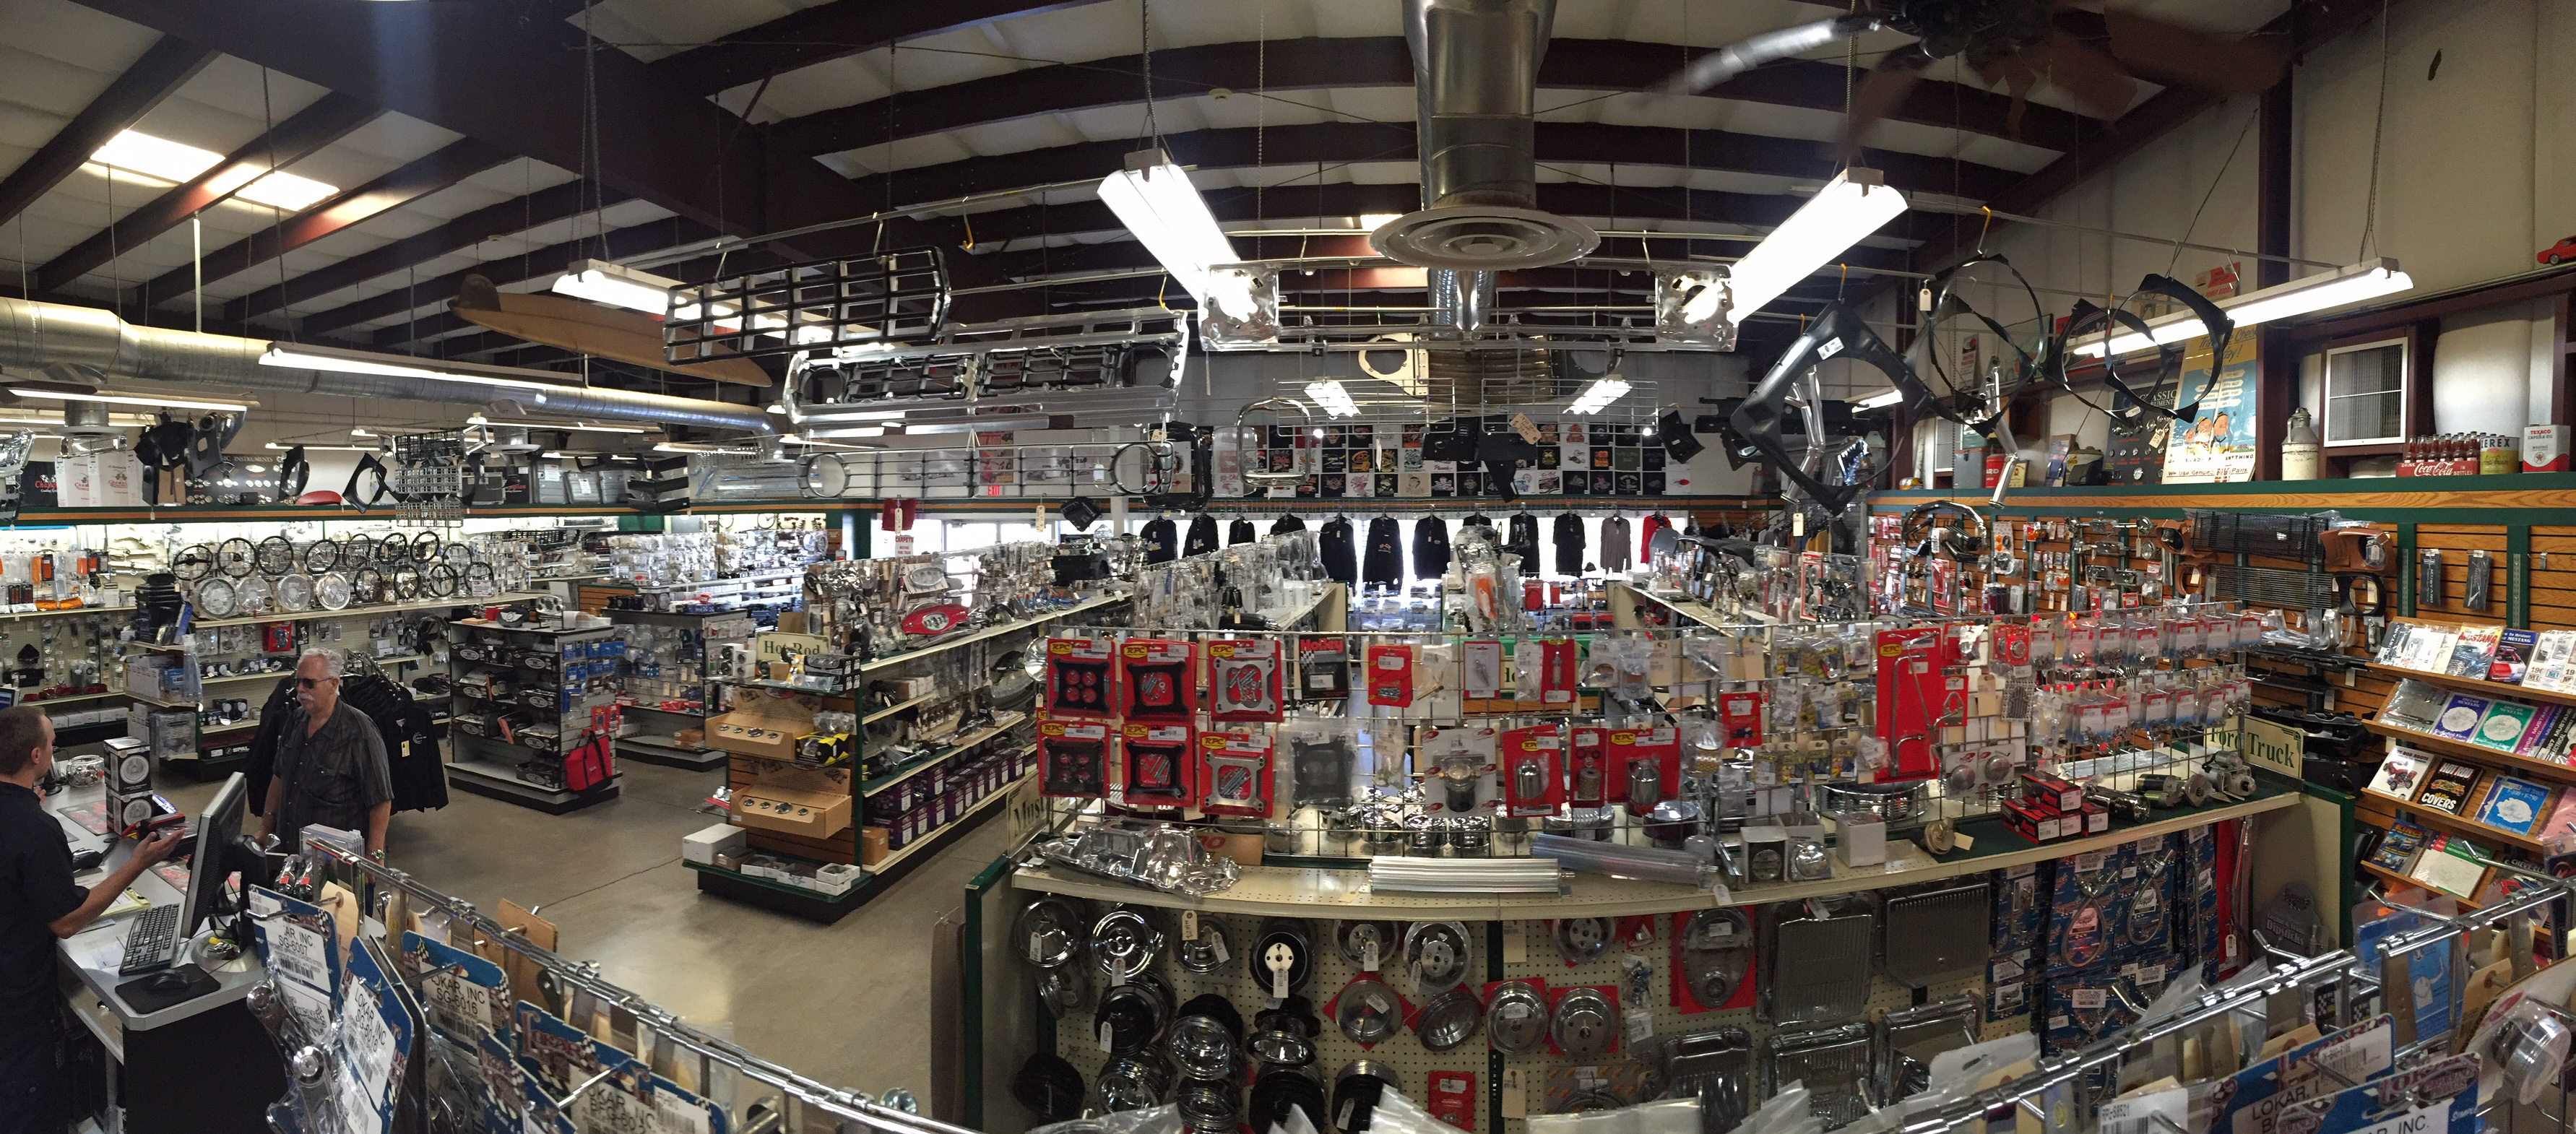 2-so-cal-speed-shop-arizona-inside-store-parts.jpg